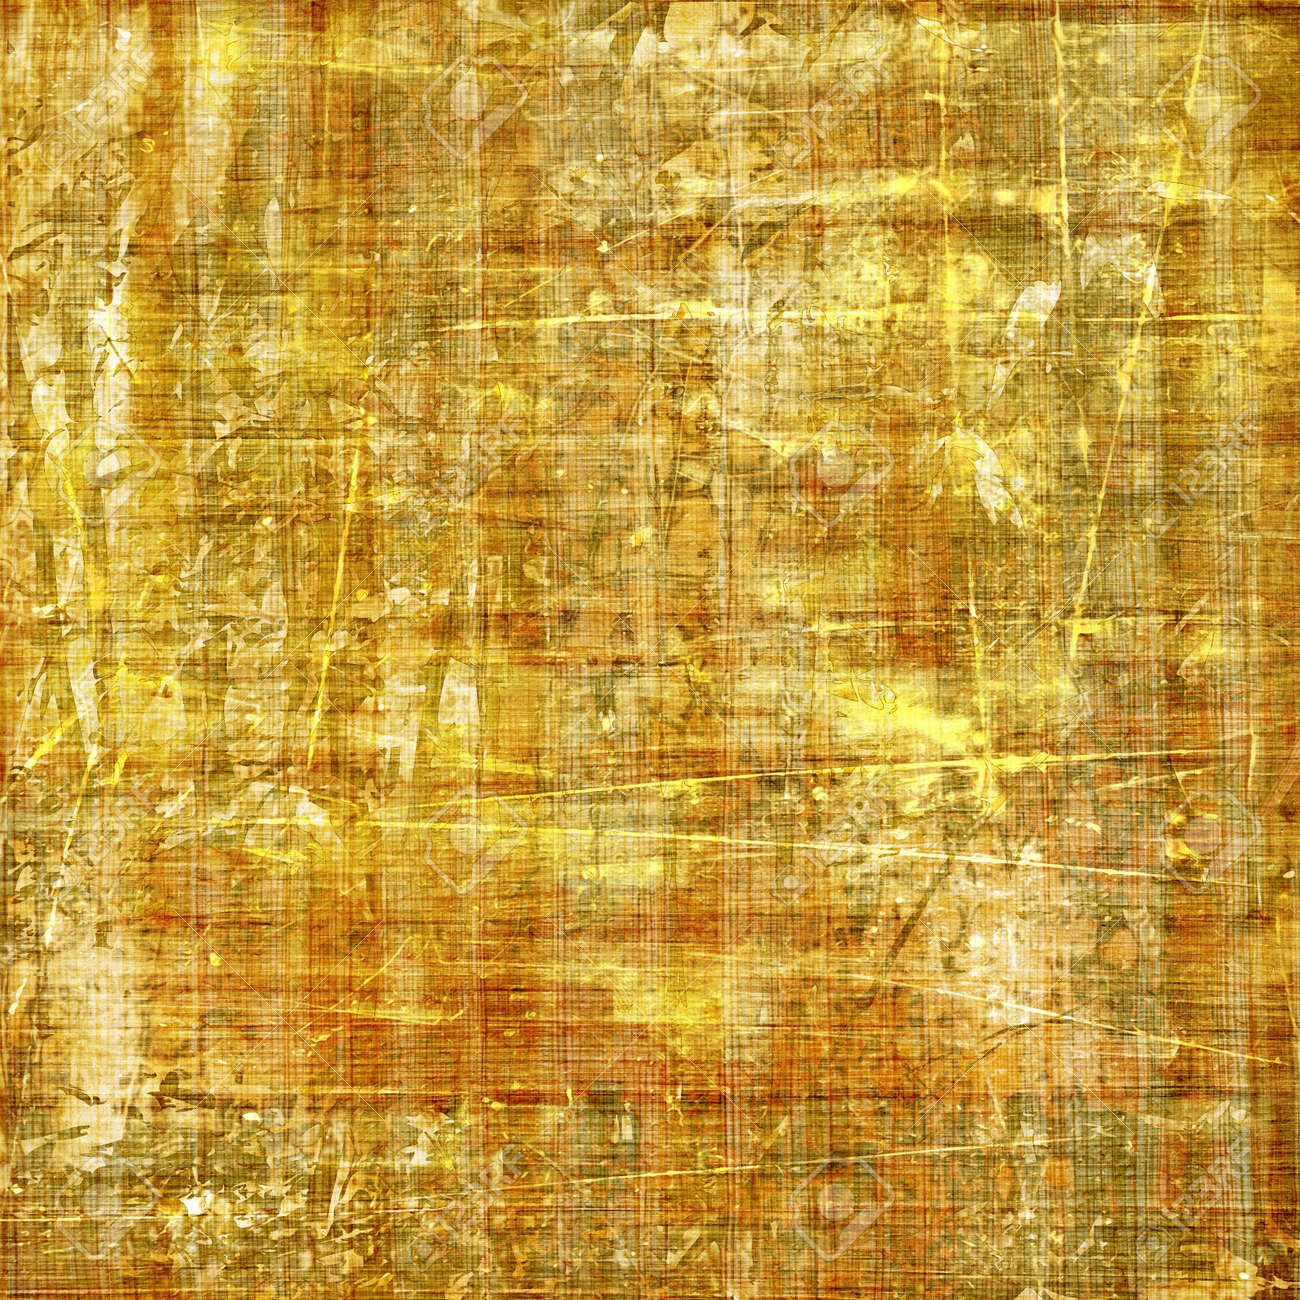 art abstract grunge paper background Stock Photo - 13984892